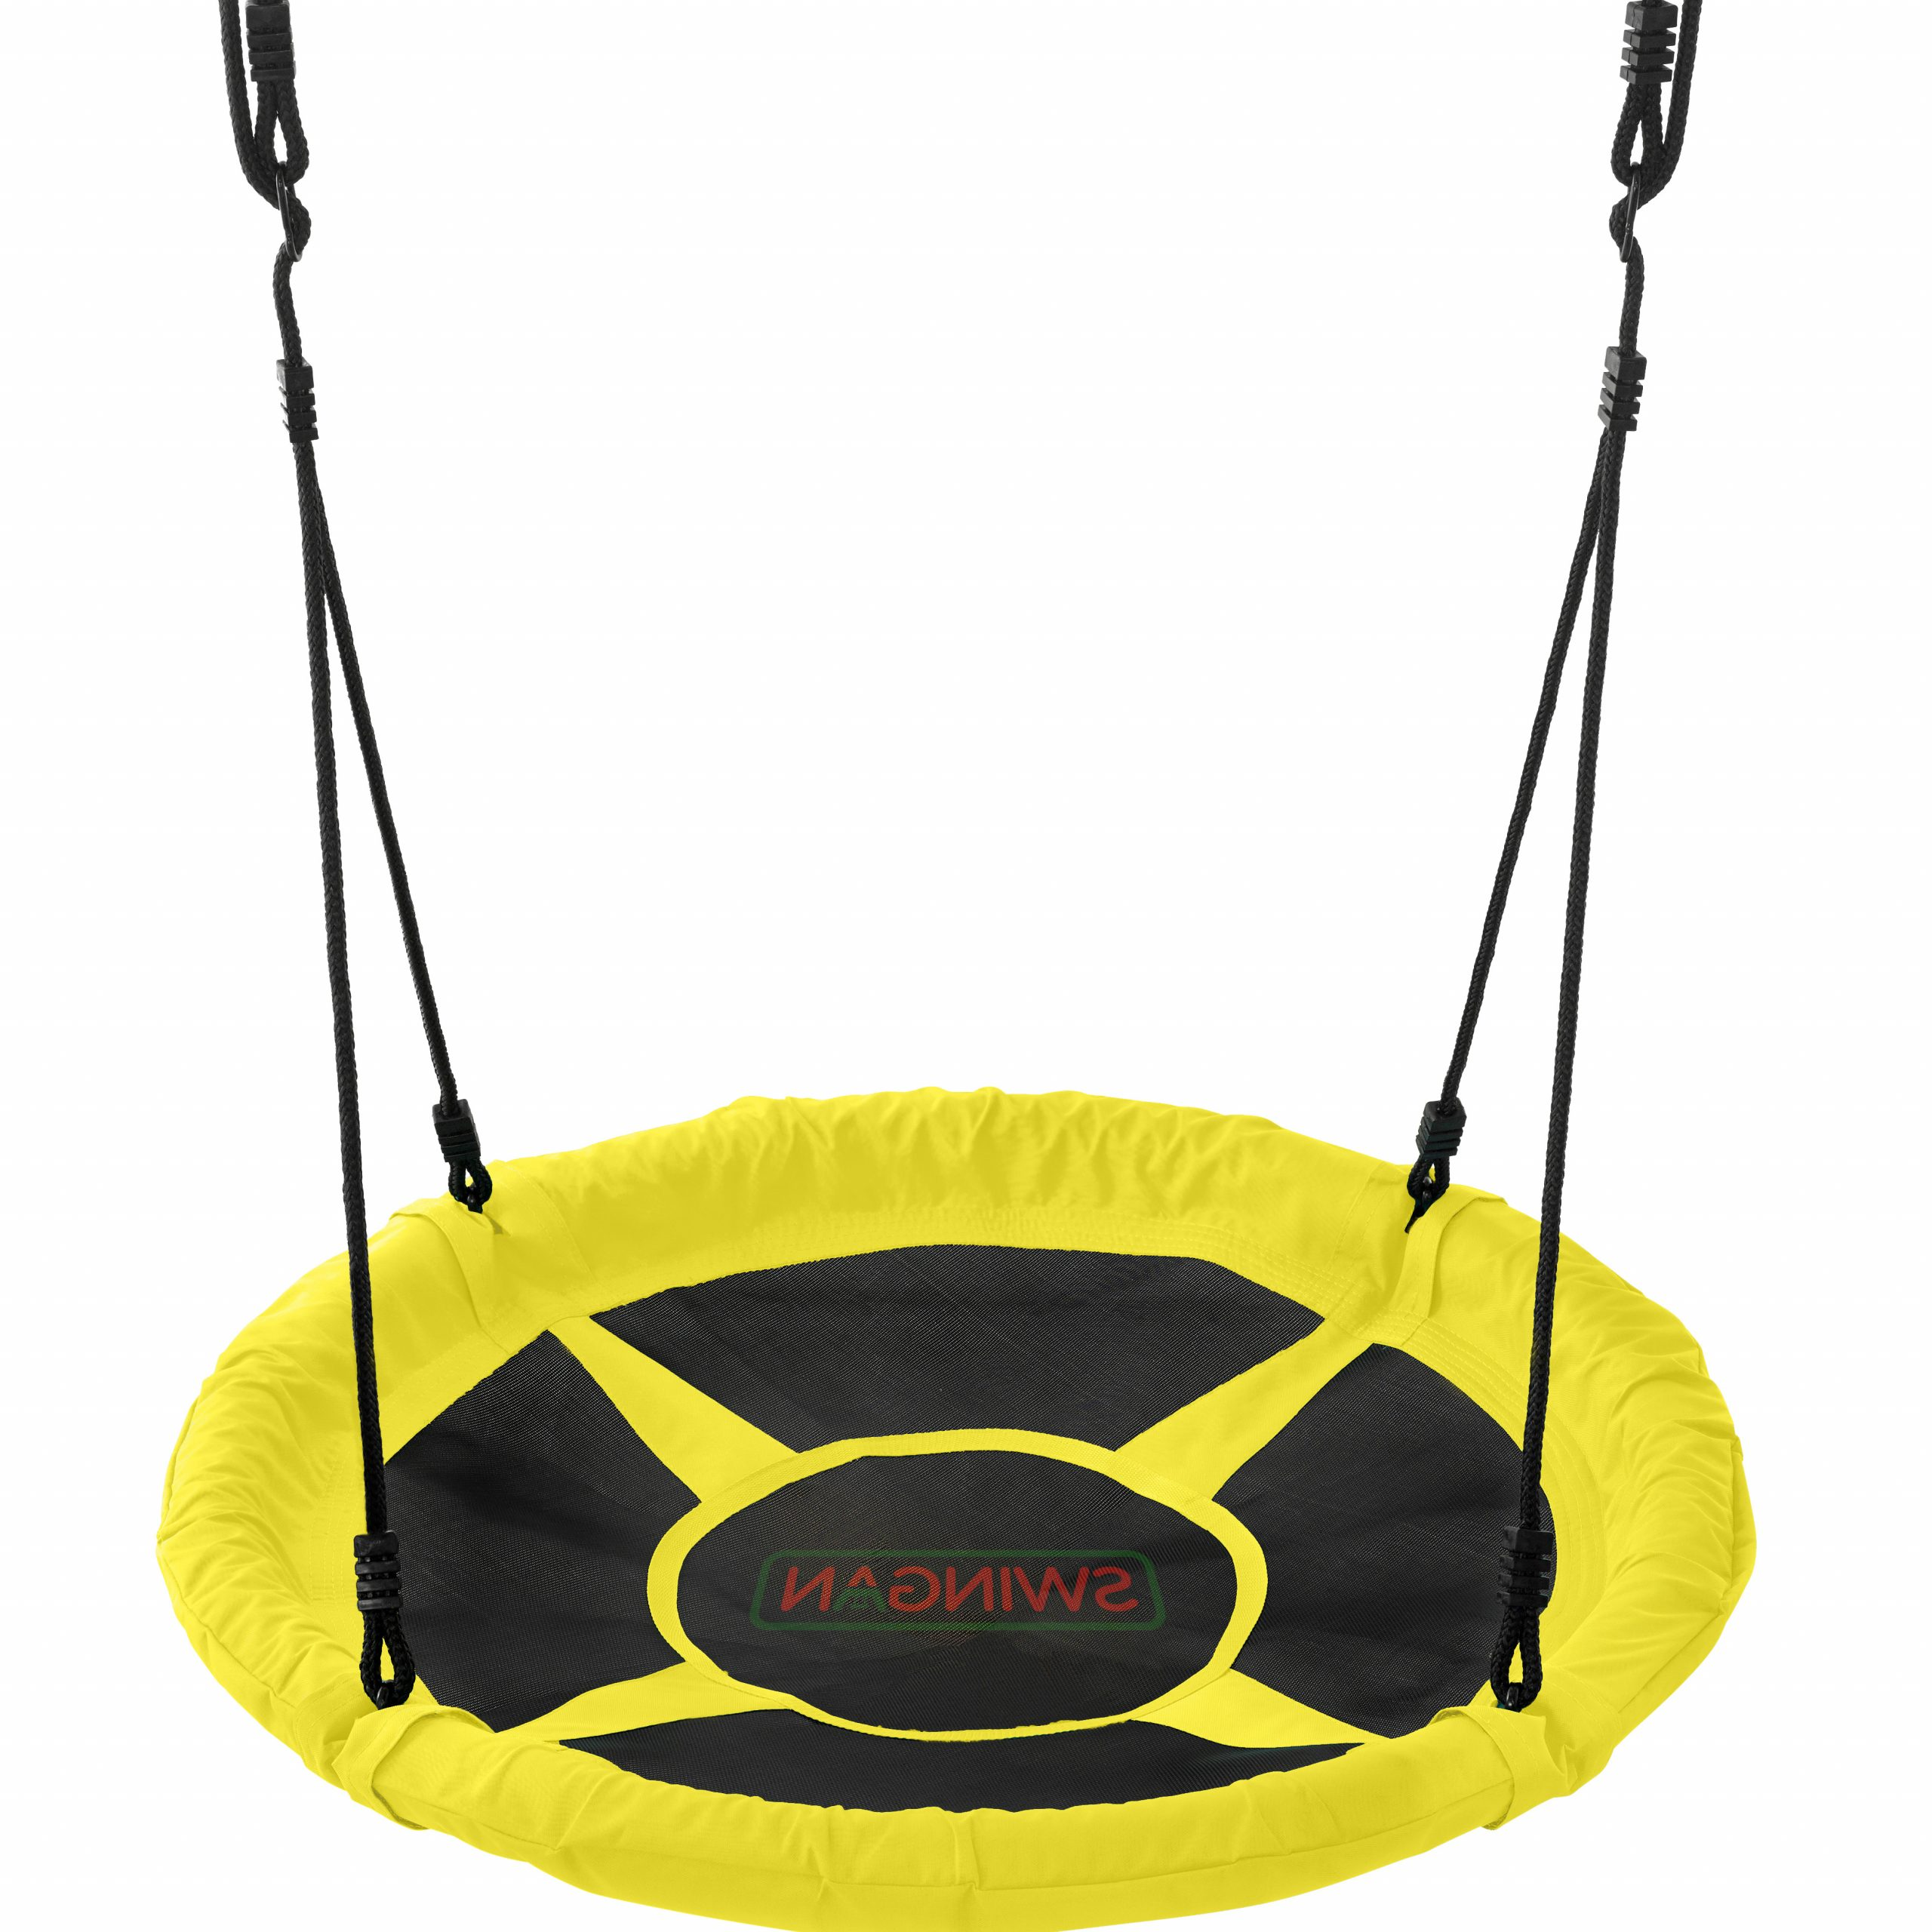 Trendy Nest Swings With Adjustable Ropes Within Swingan – 37.5 Super Fun Nest Swing With Adjustable Ropes – Solid Fabric  Seat Design – Yellow (Gallery 14 of 30)